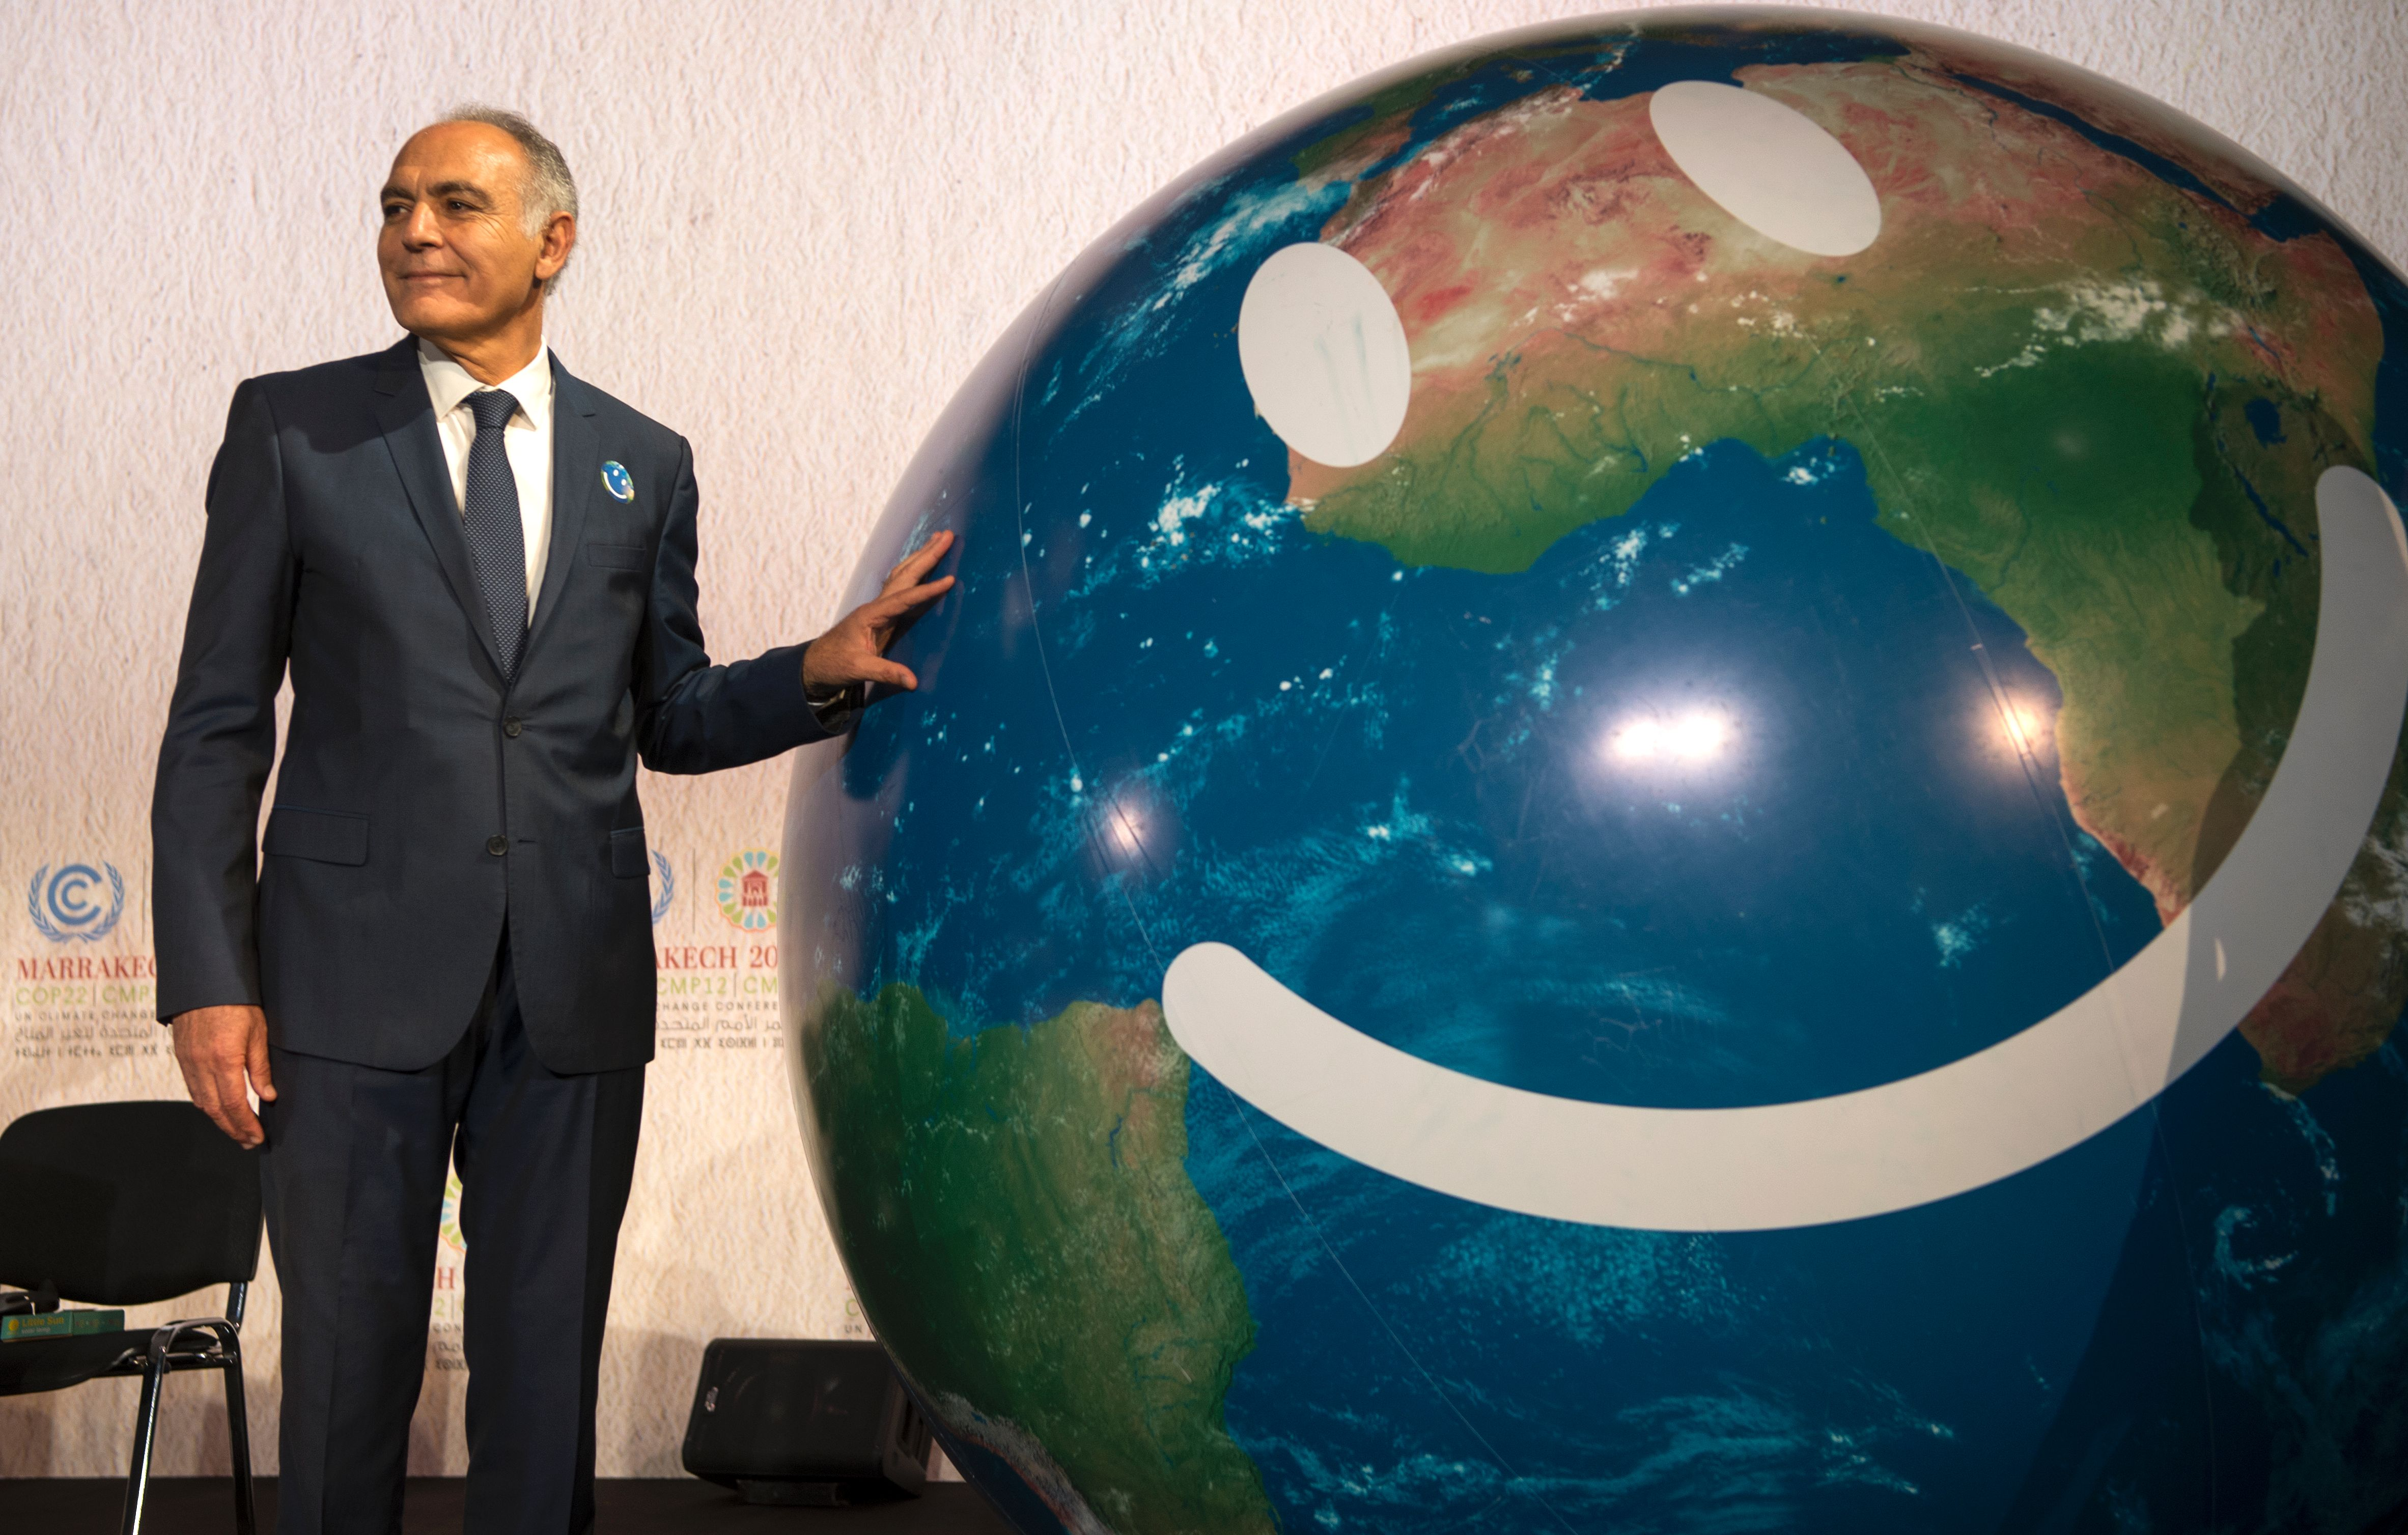 COP22 president Salaheddine Mezouar caresses a smiley Earth ball during a climate change summit